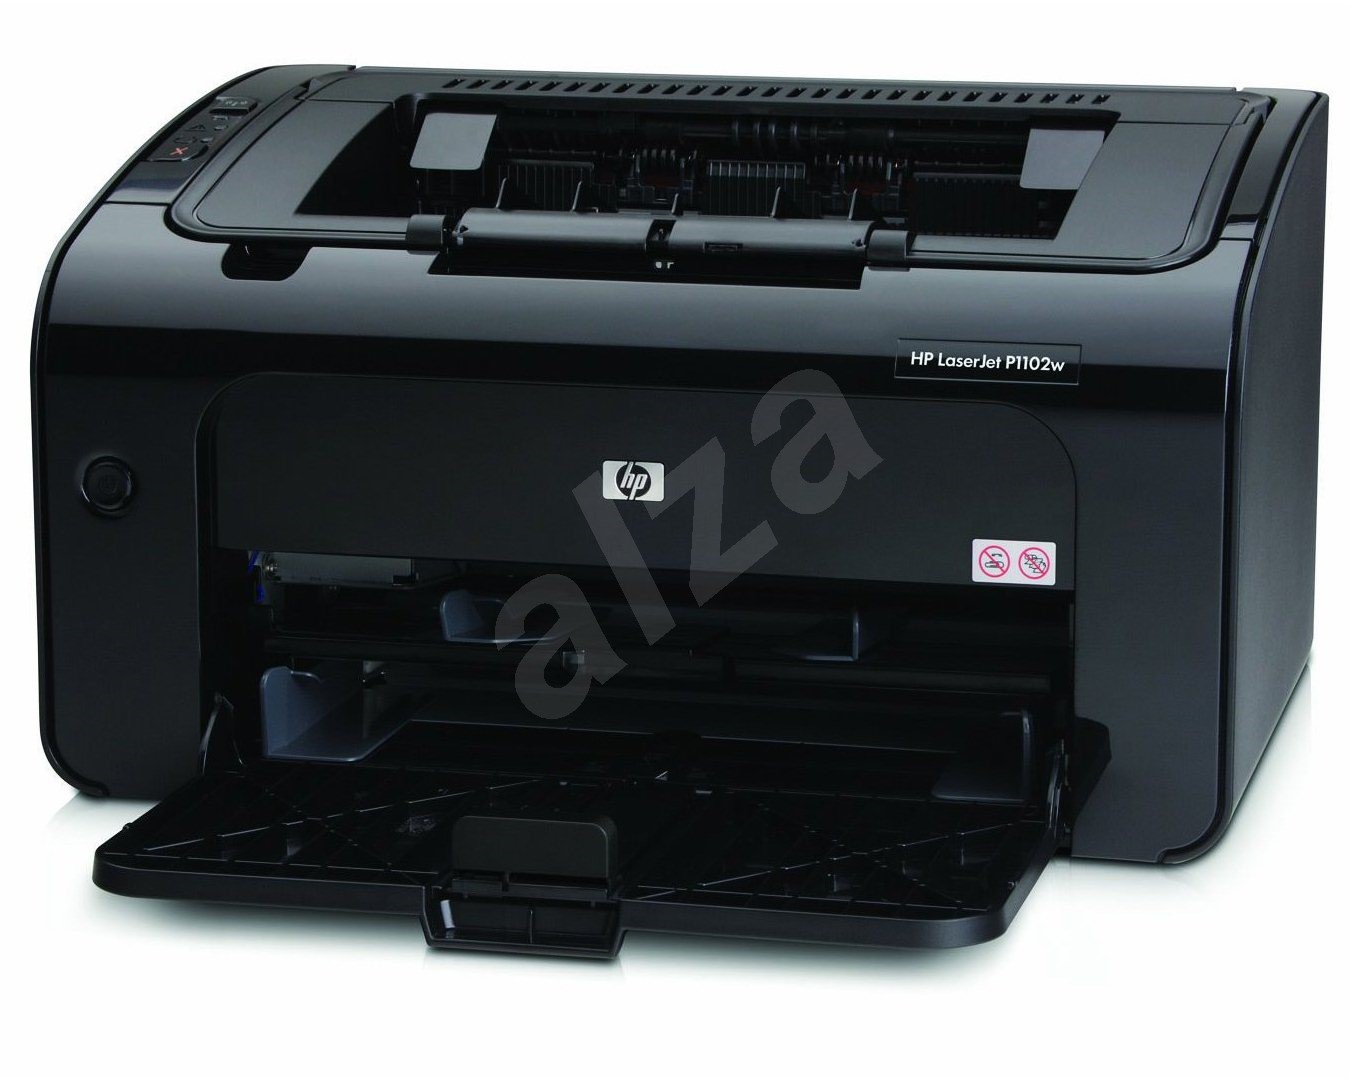 hp laserjet pro p1102w wifi laser printer. Black Bedroom Furniture Sets. Home Design Ideas